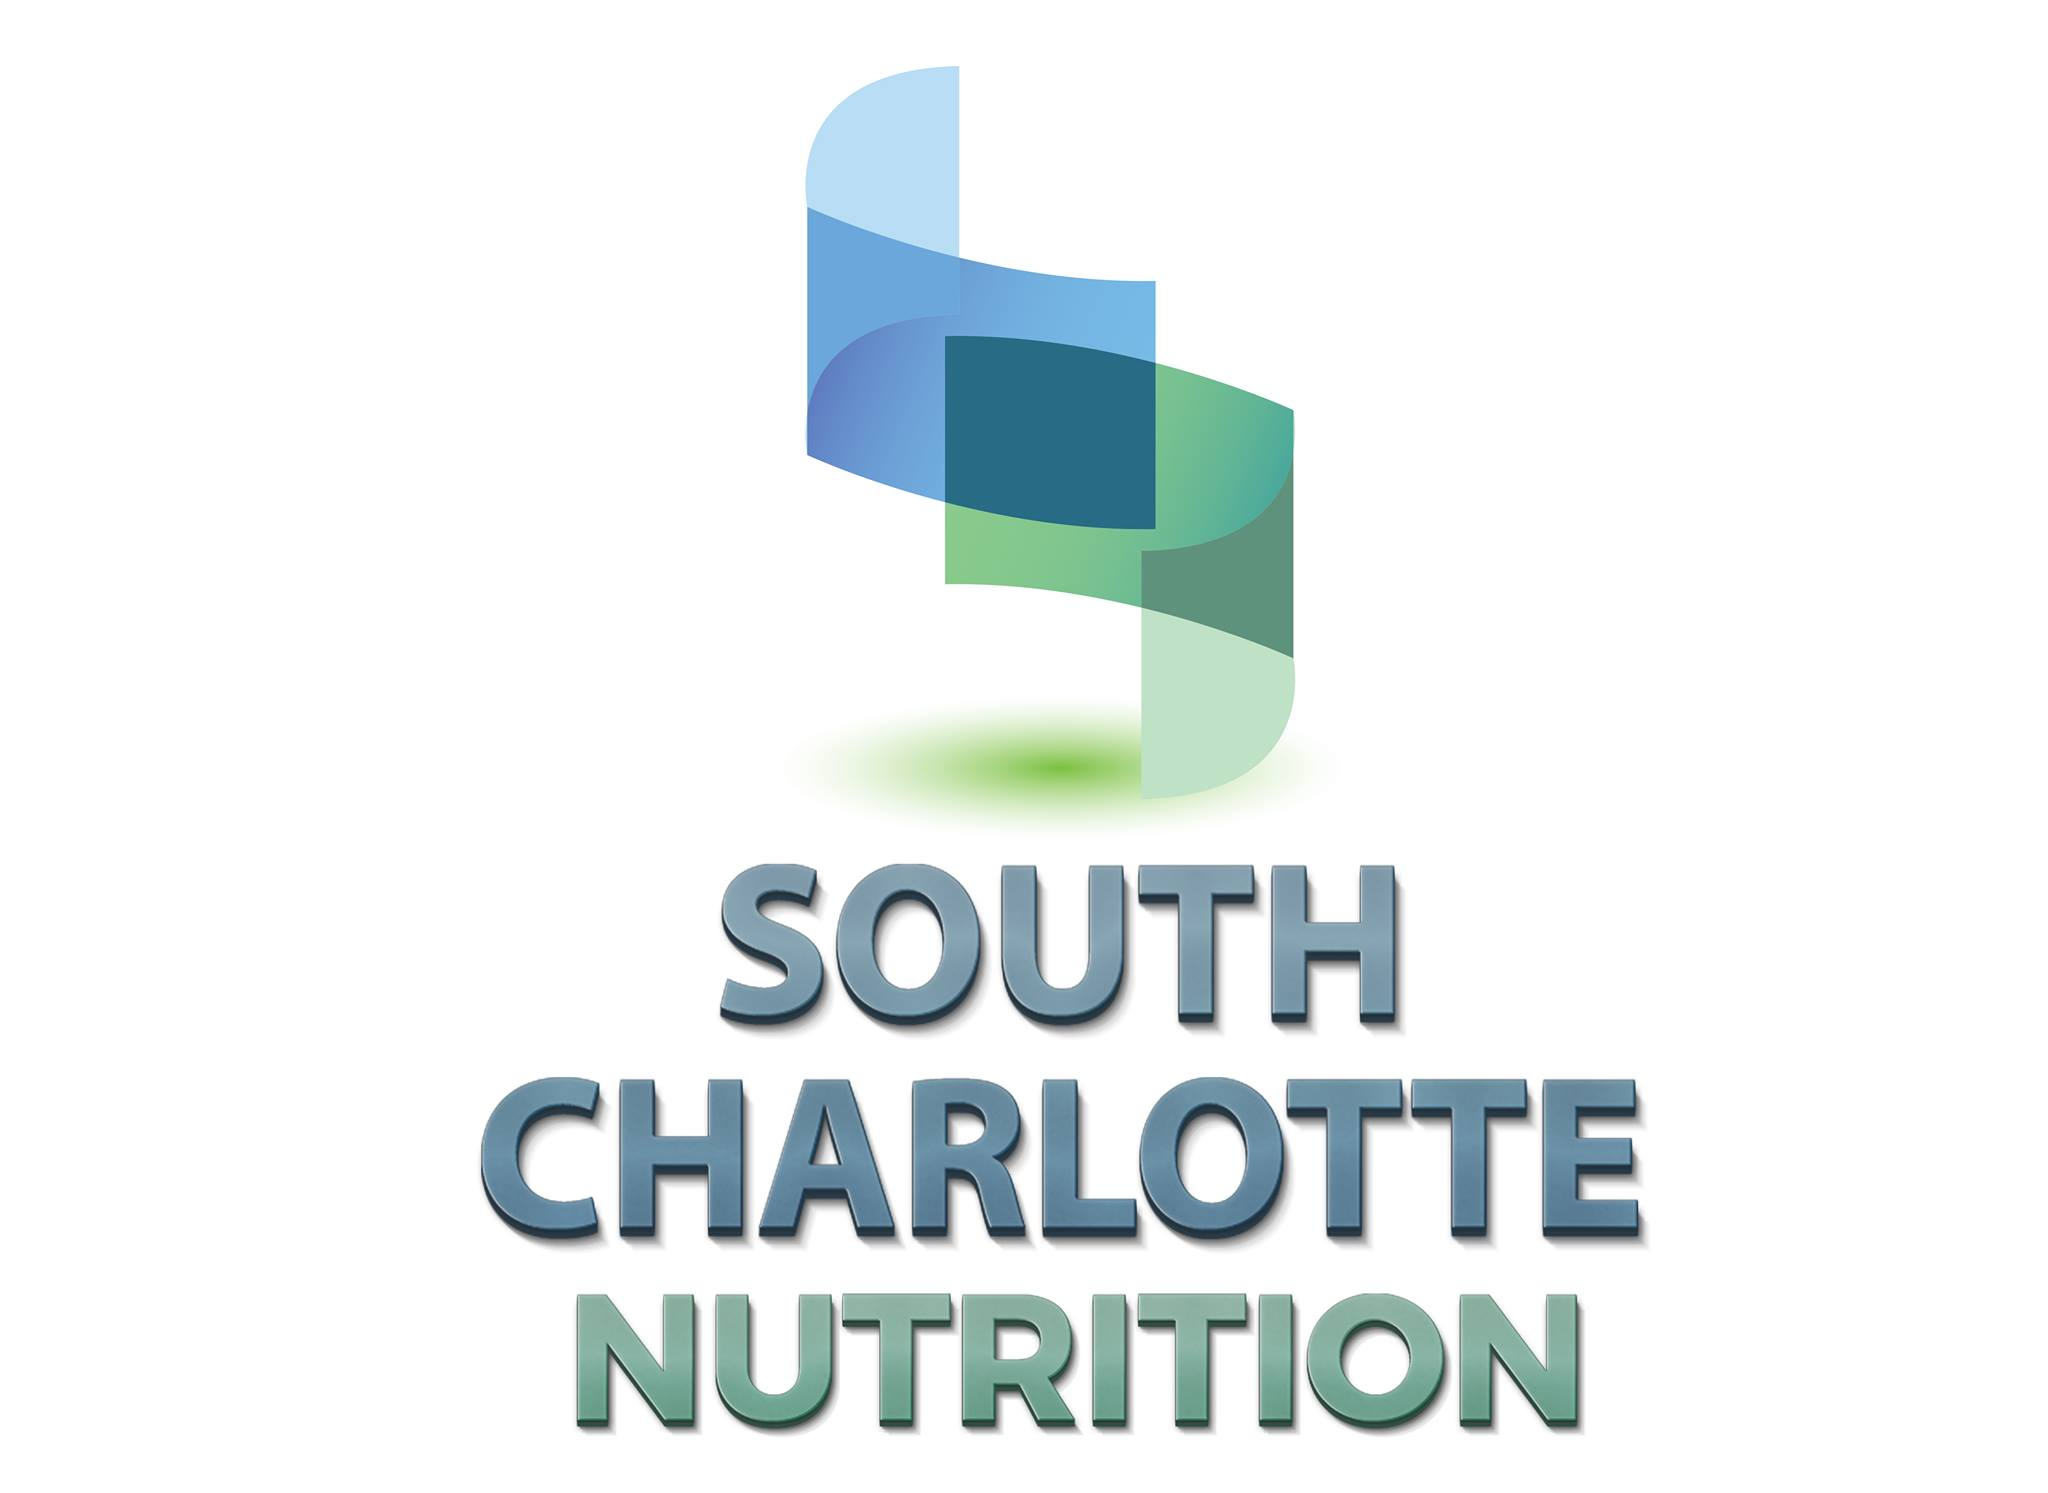 South Charlotte Nutrition